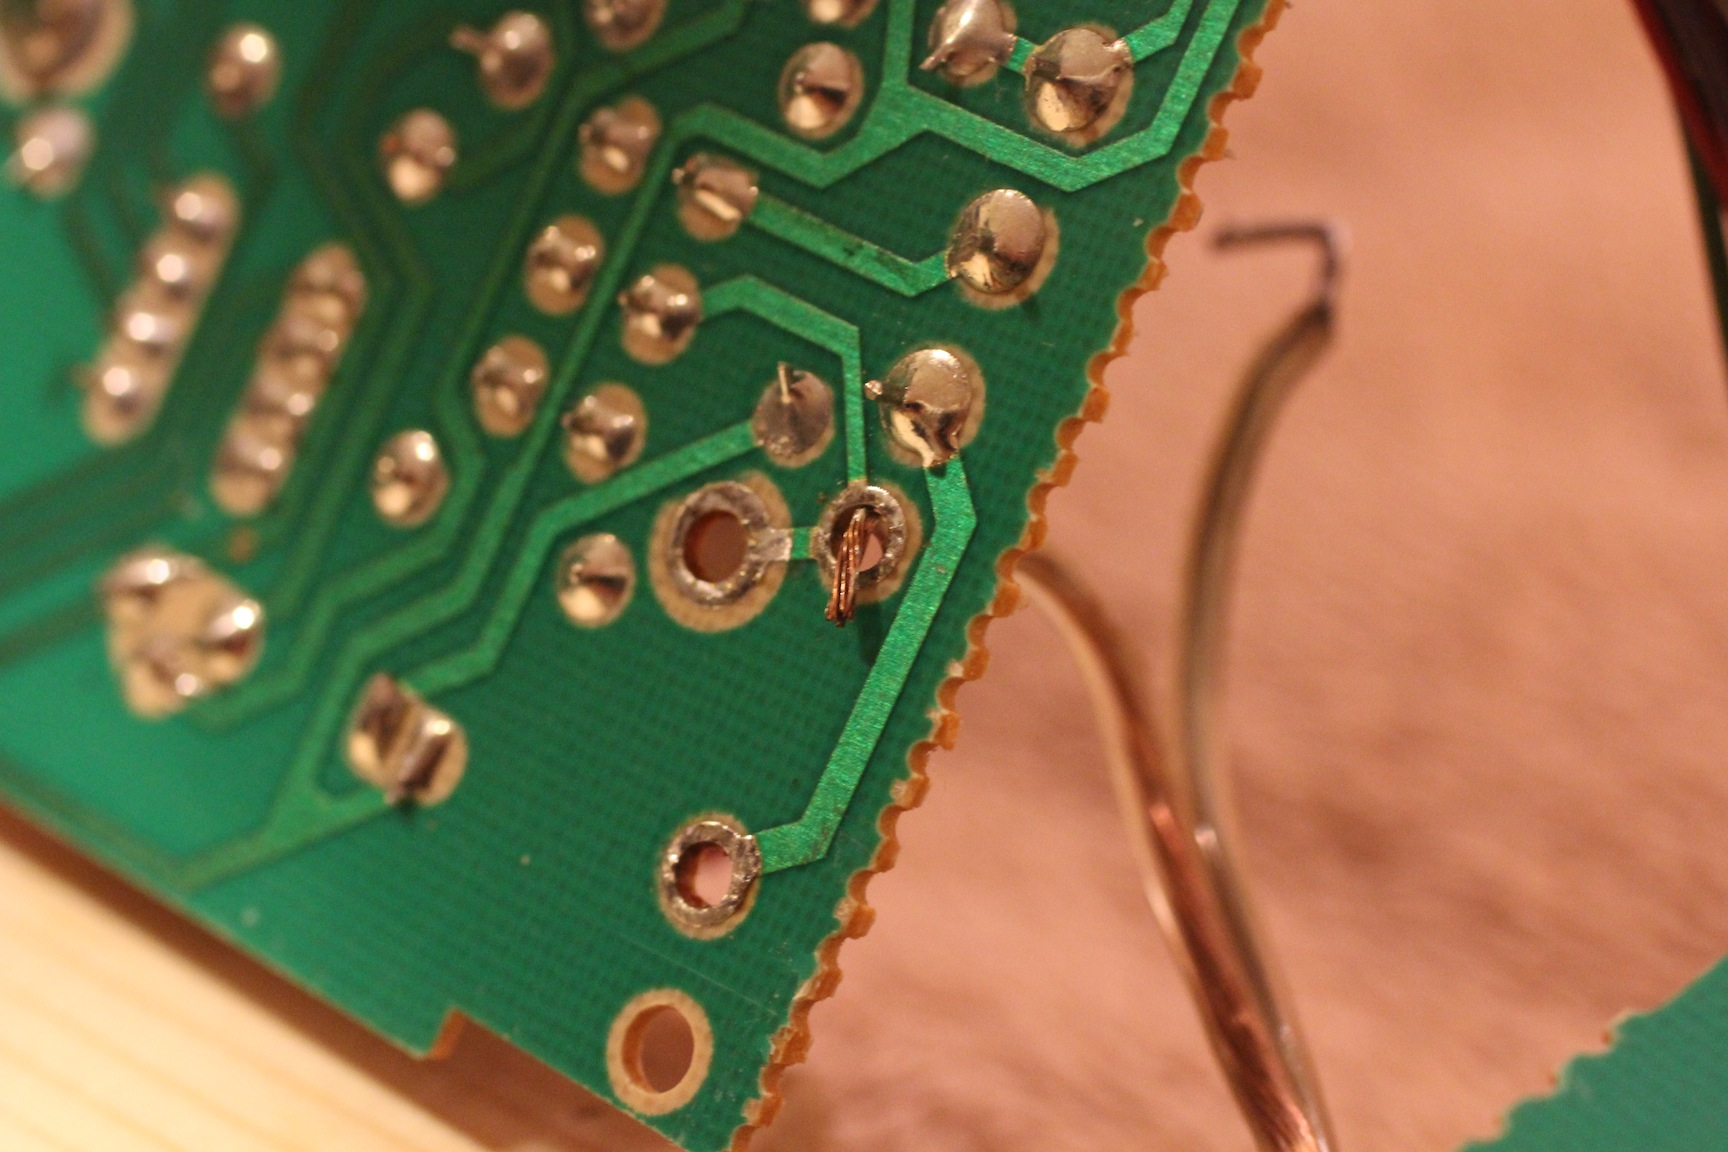 17-24v-soldered-into-old-power-input-spot-on-the-pcb-board.jpg